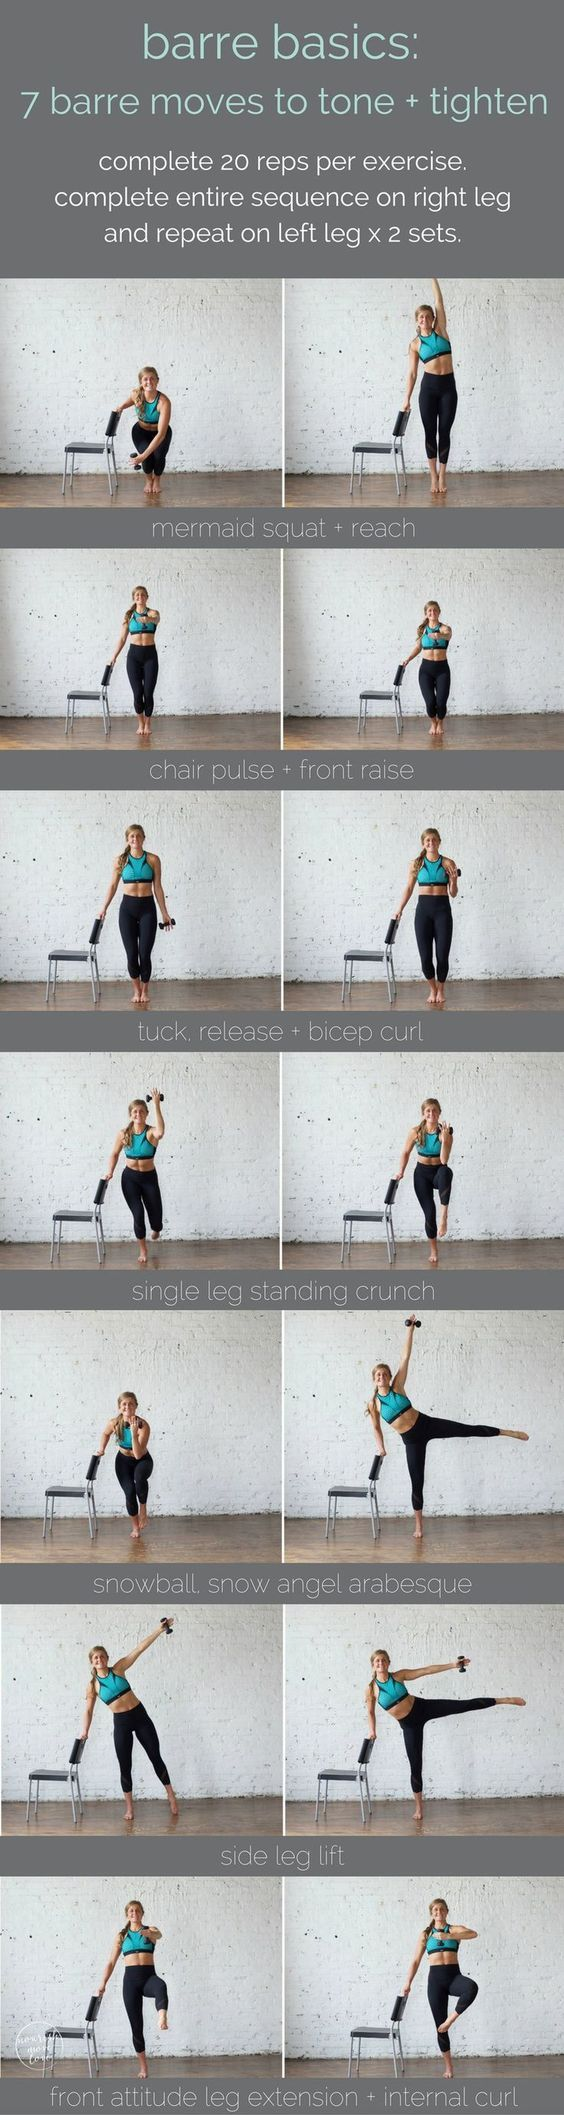 barre basics: 7 barre moves to tone + tighten